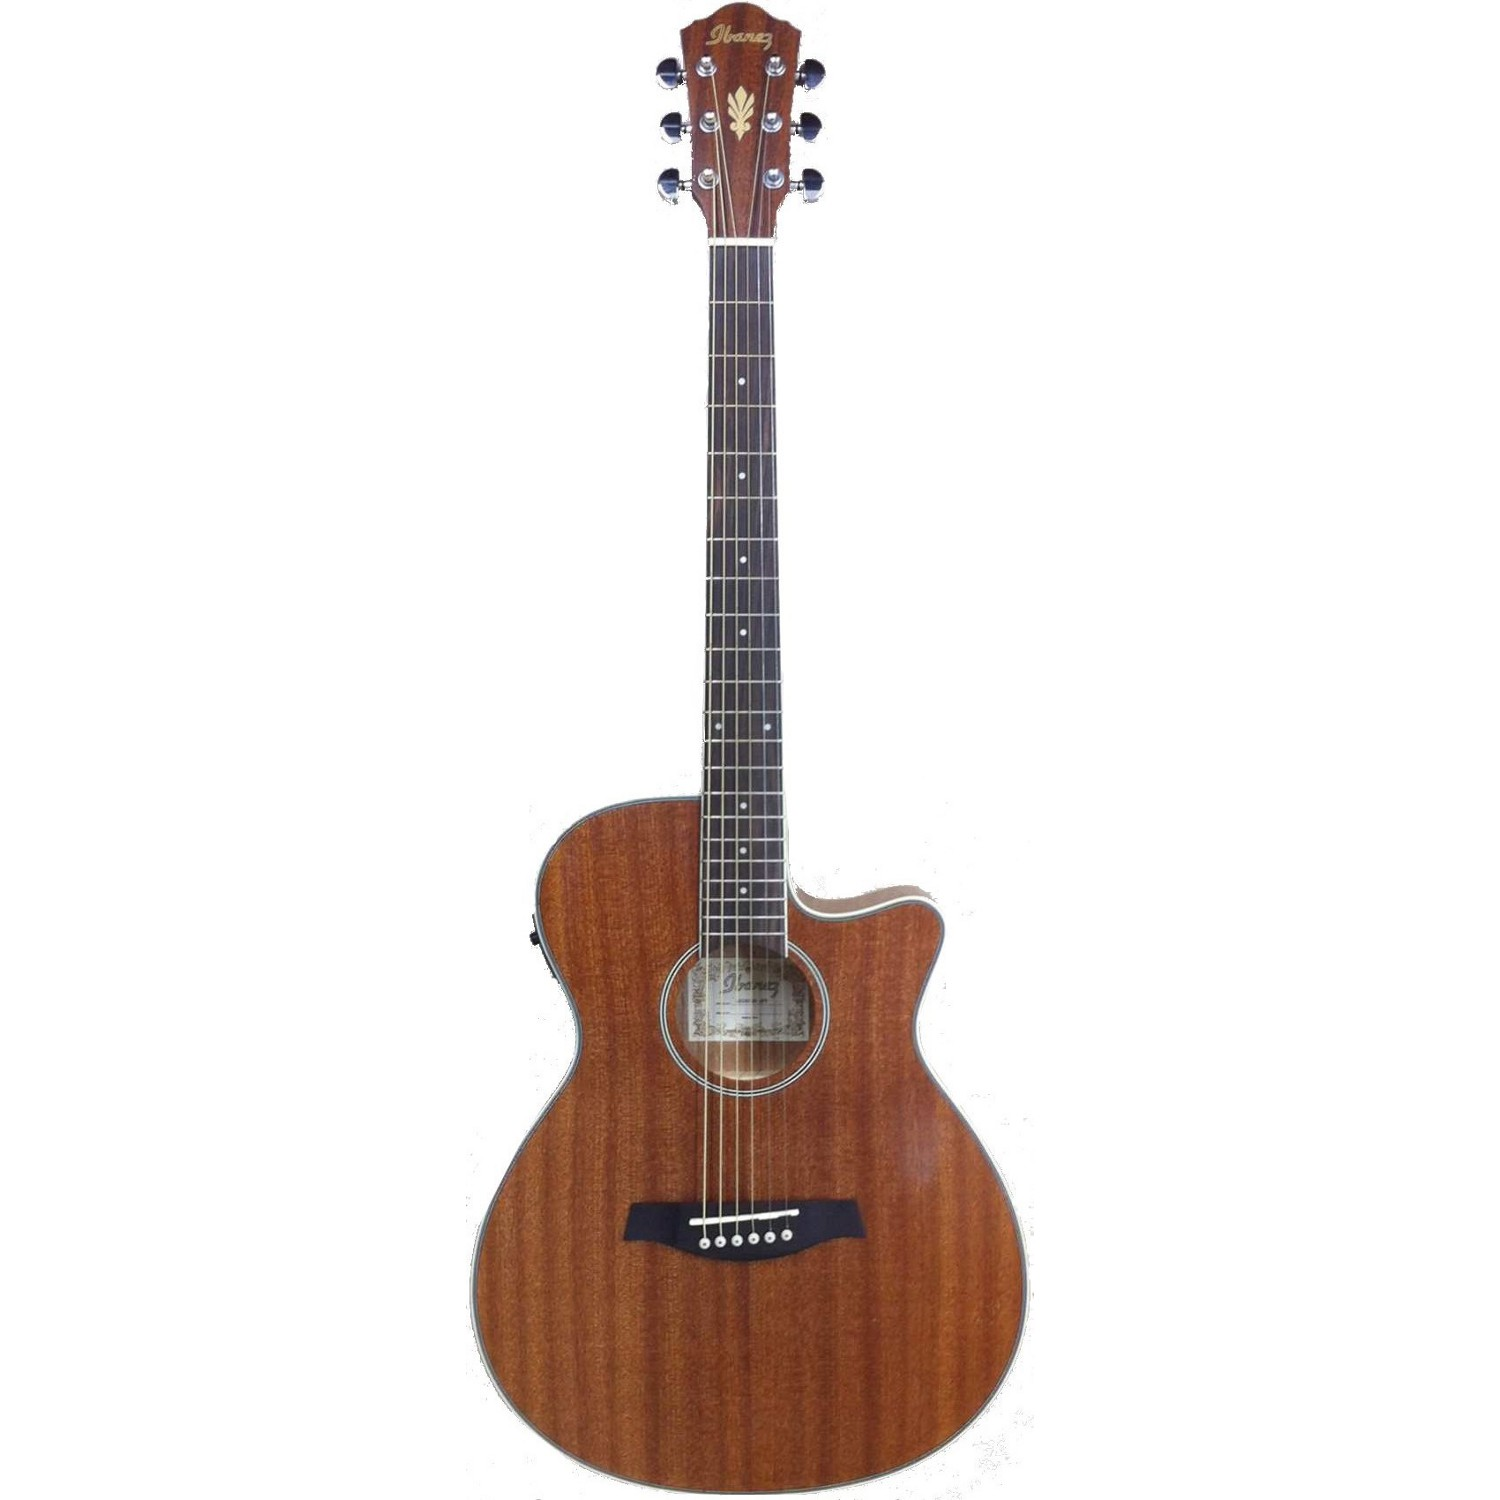 Ibanez AEG8EMH OPM electro acoustic steel string guitar